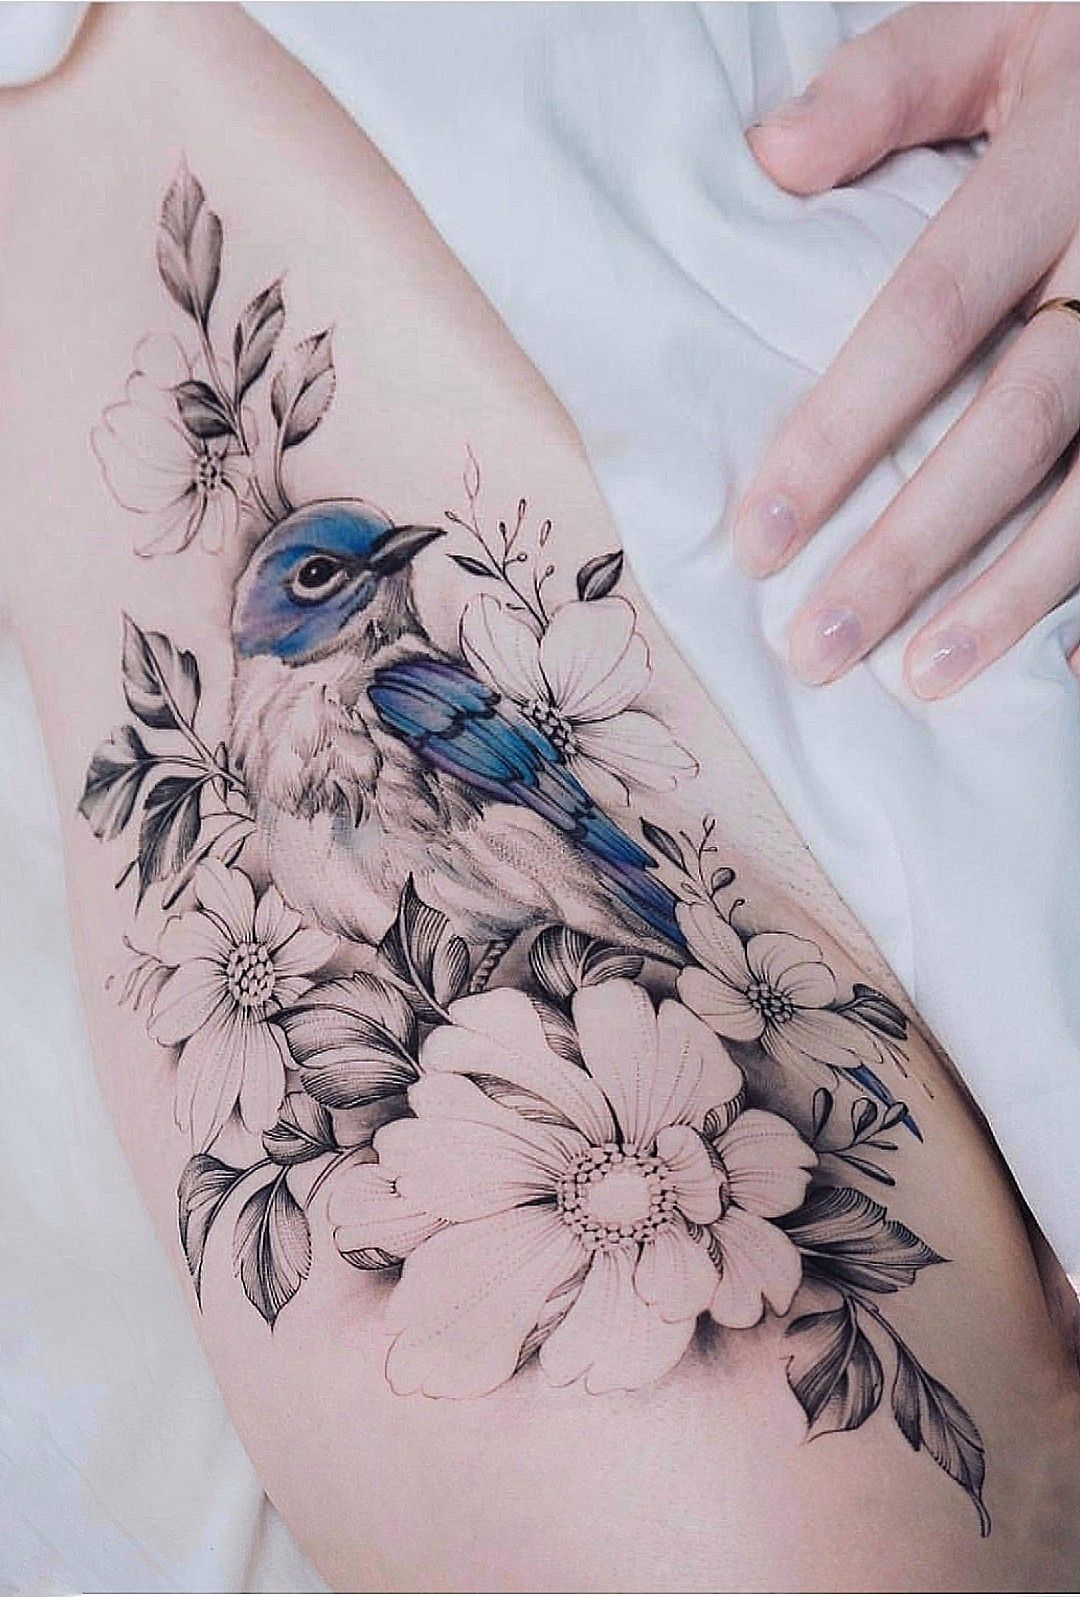 For floral tattoo, all the flowers are black & white, except for one. -   22 flower bird tattoo